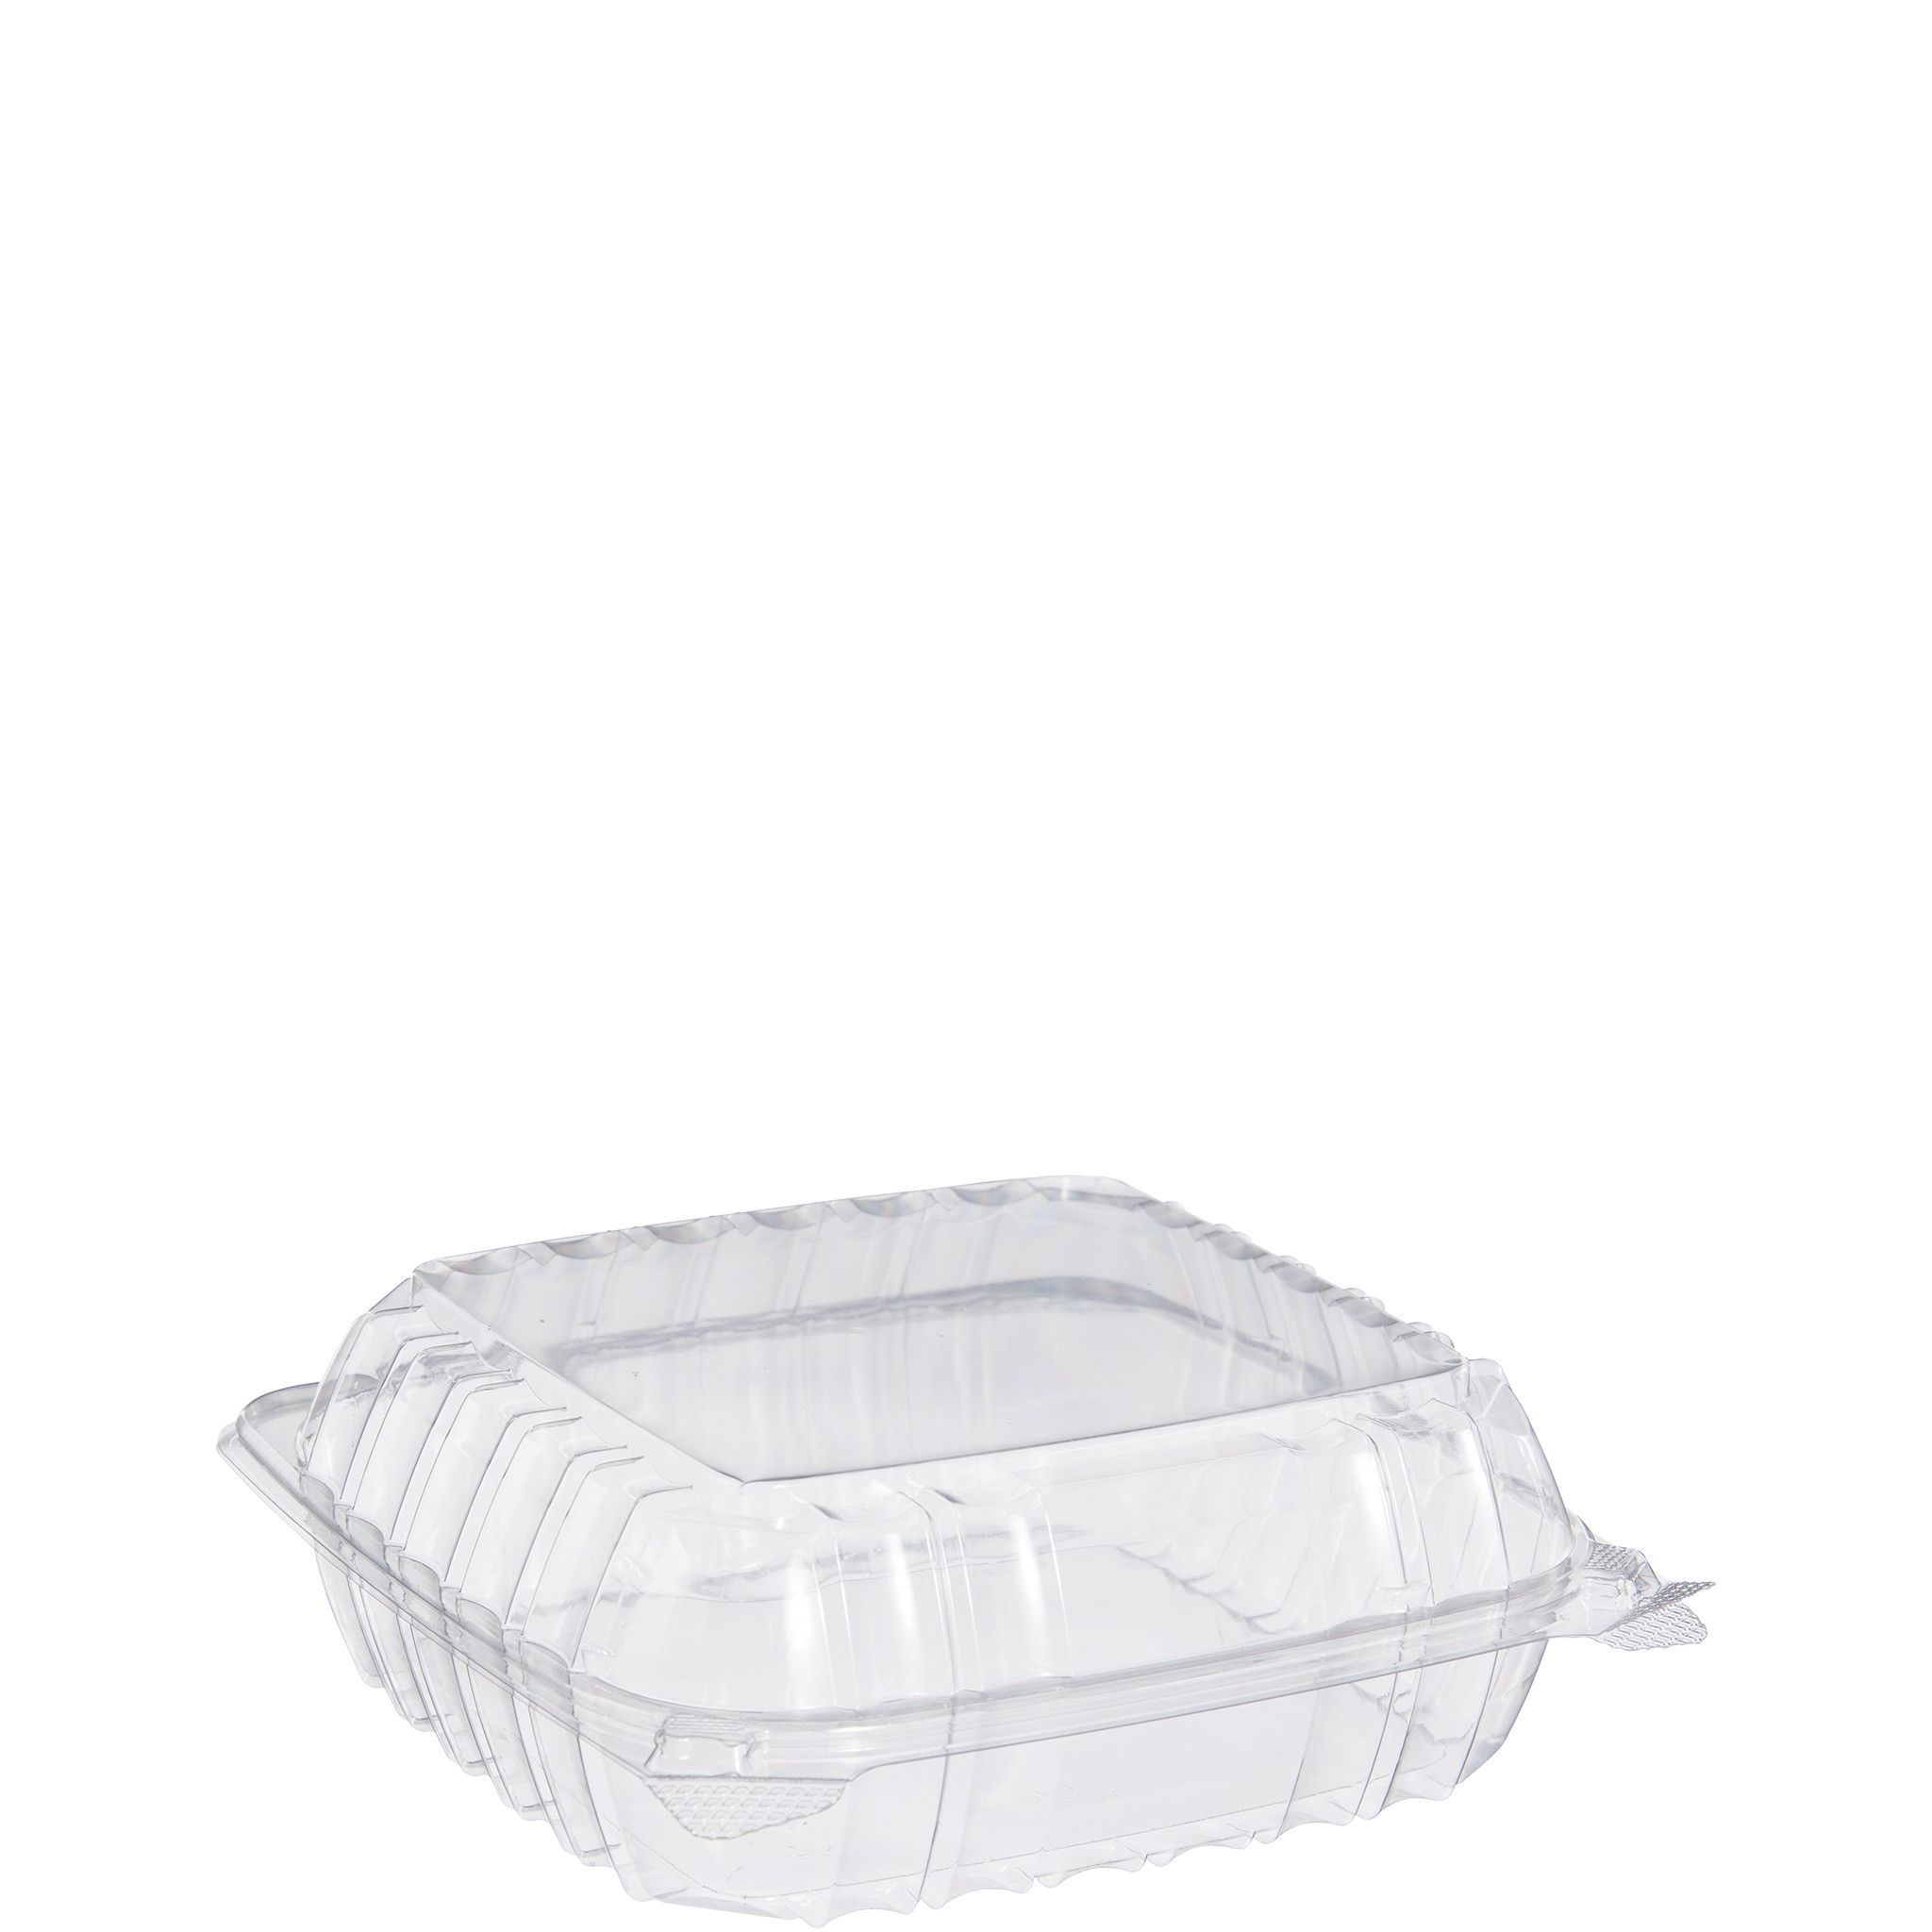 ClearSeal® Container with Hinged Lid - Medium, Clear